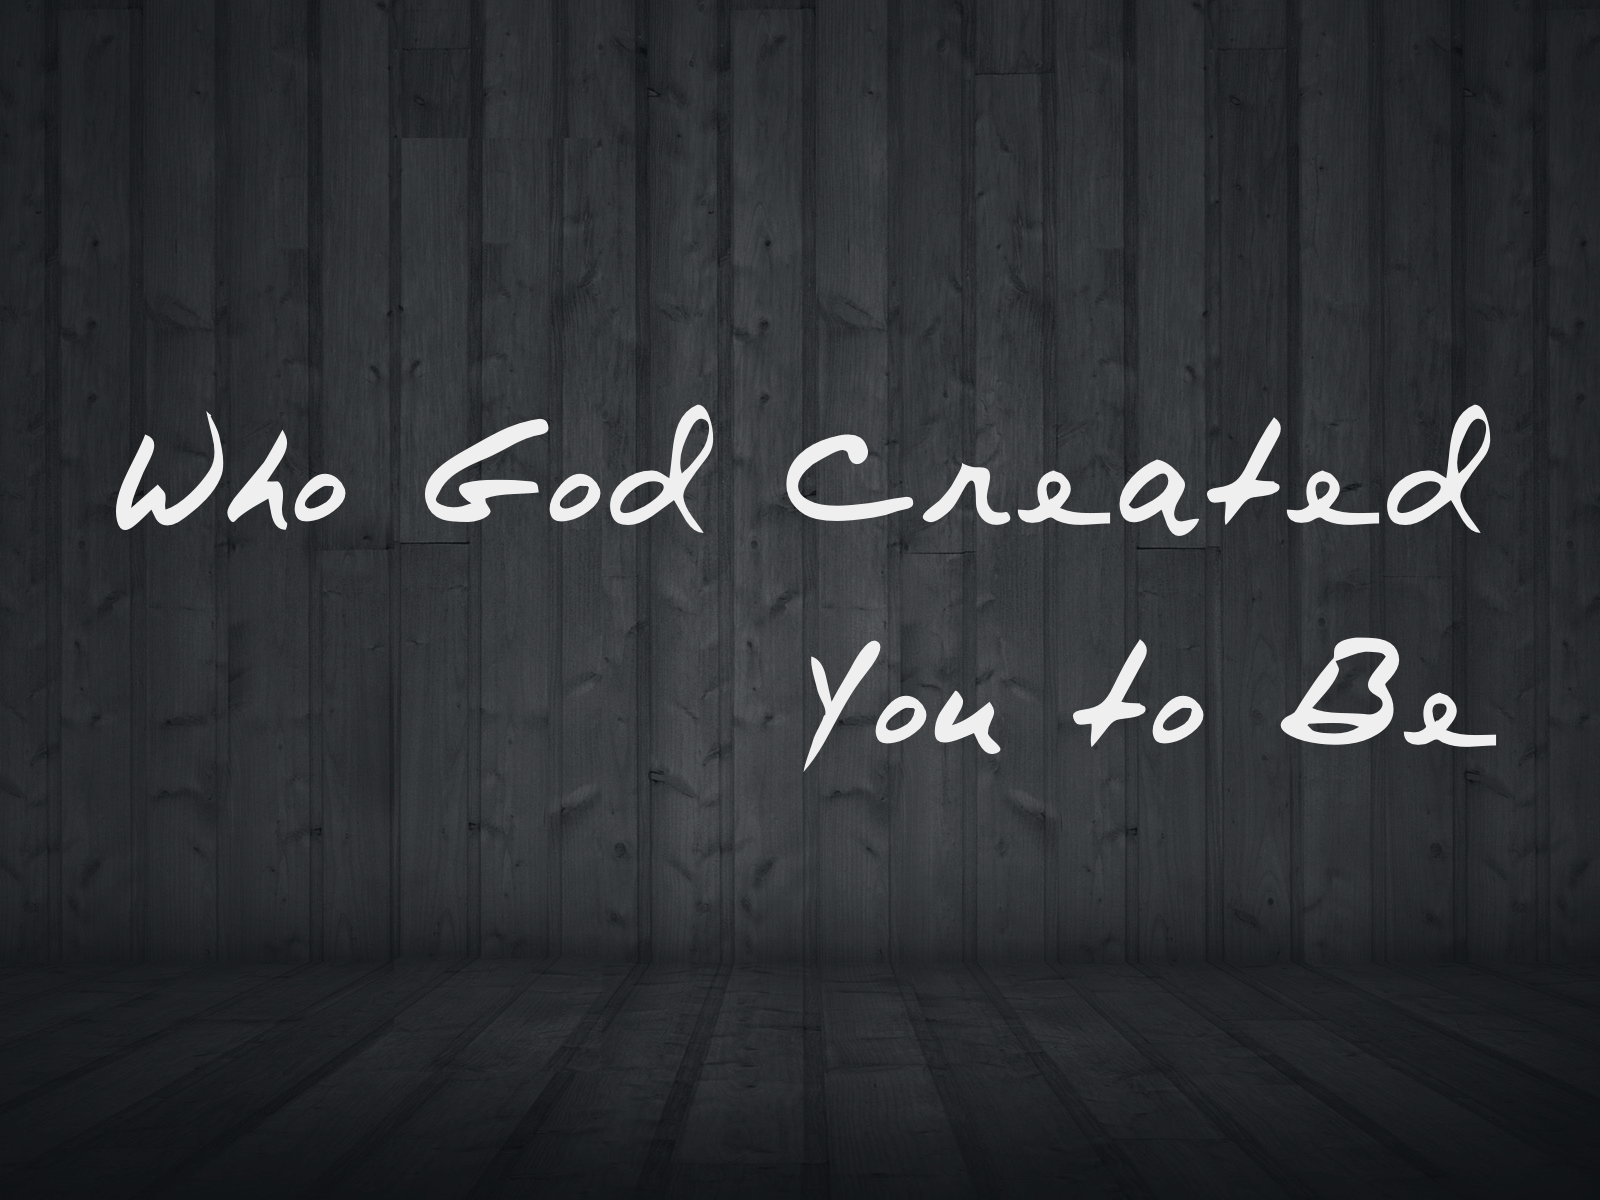 Who Go Created You to Be